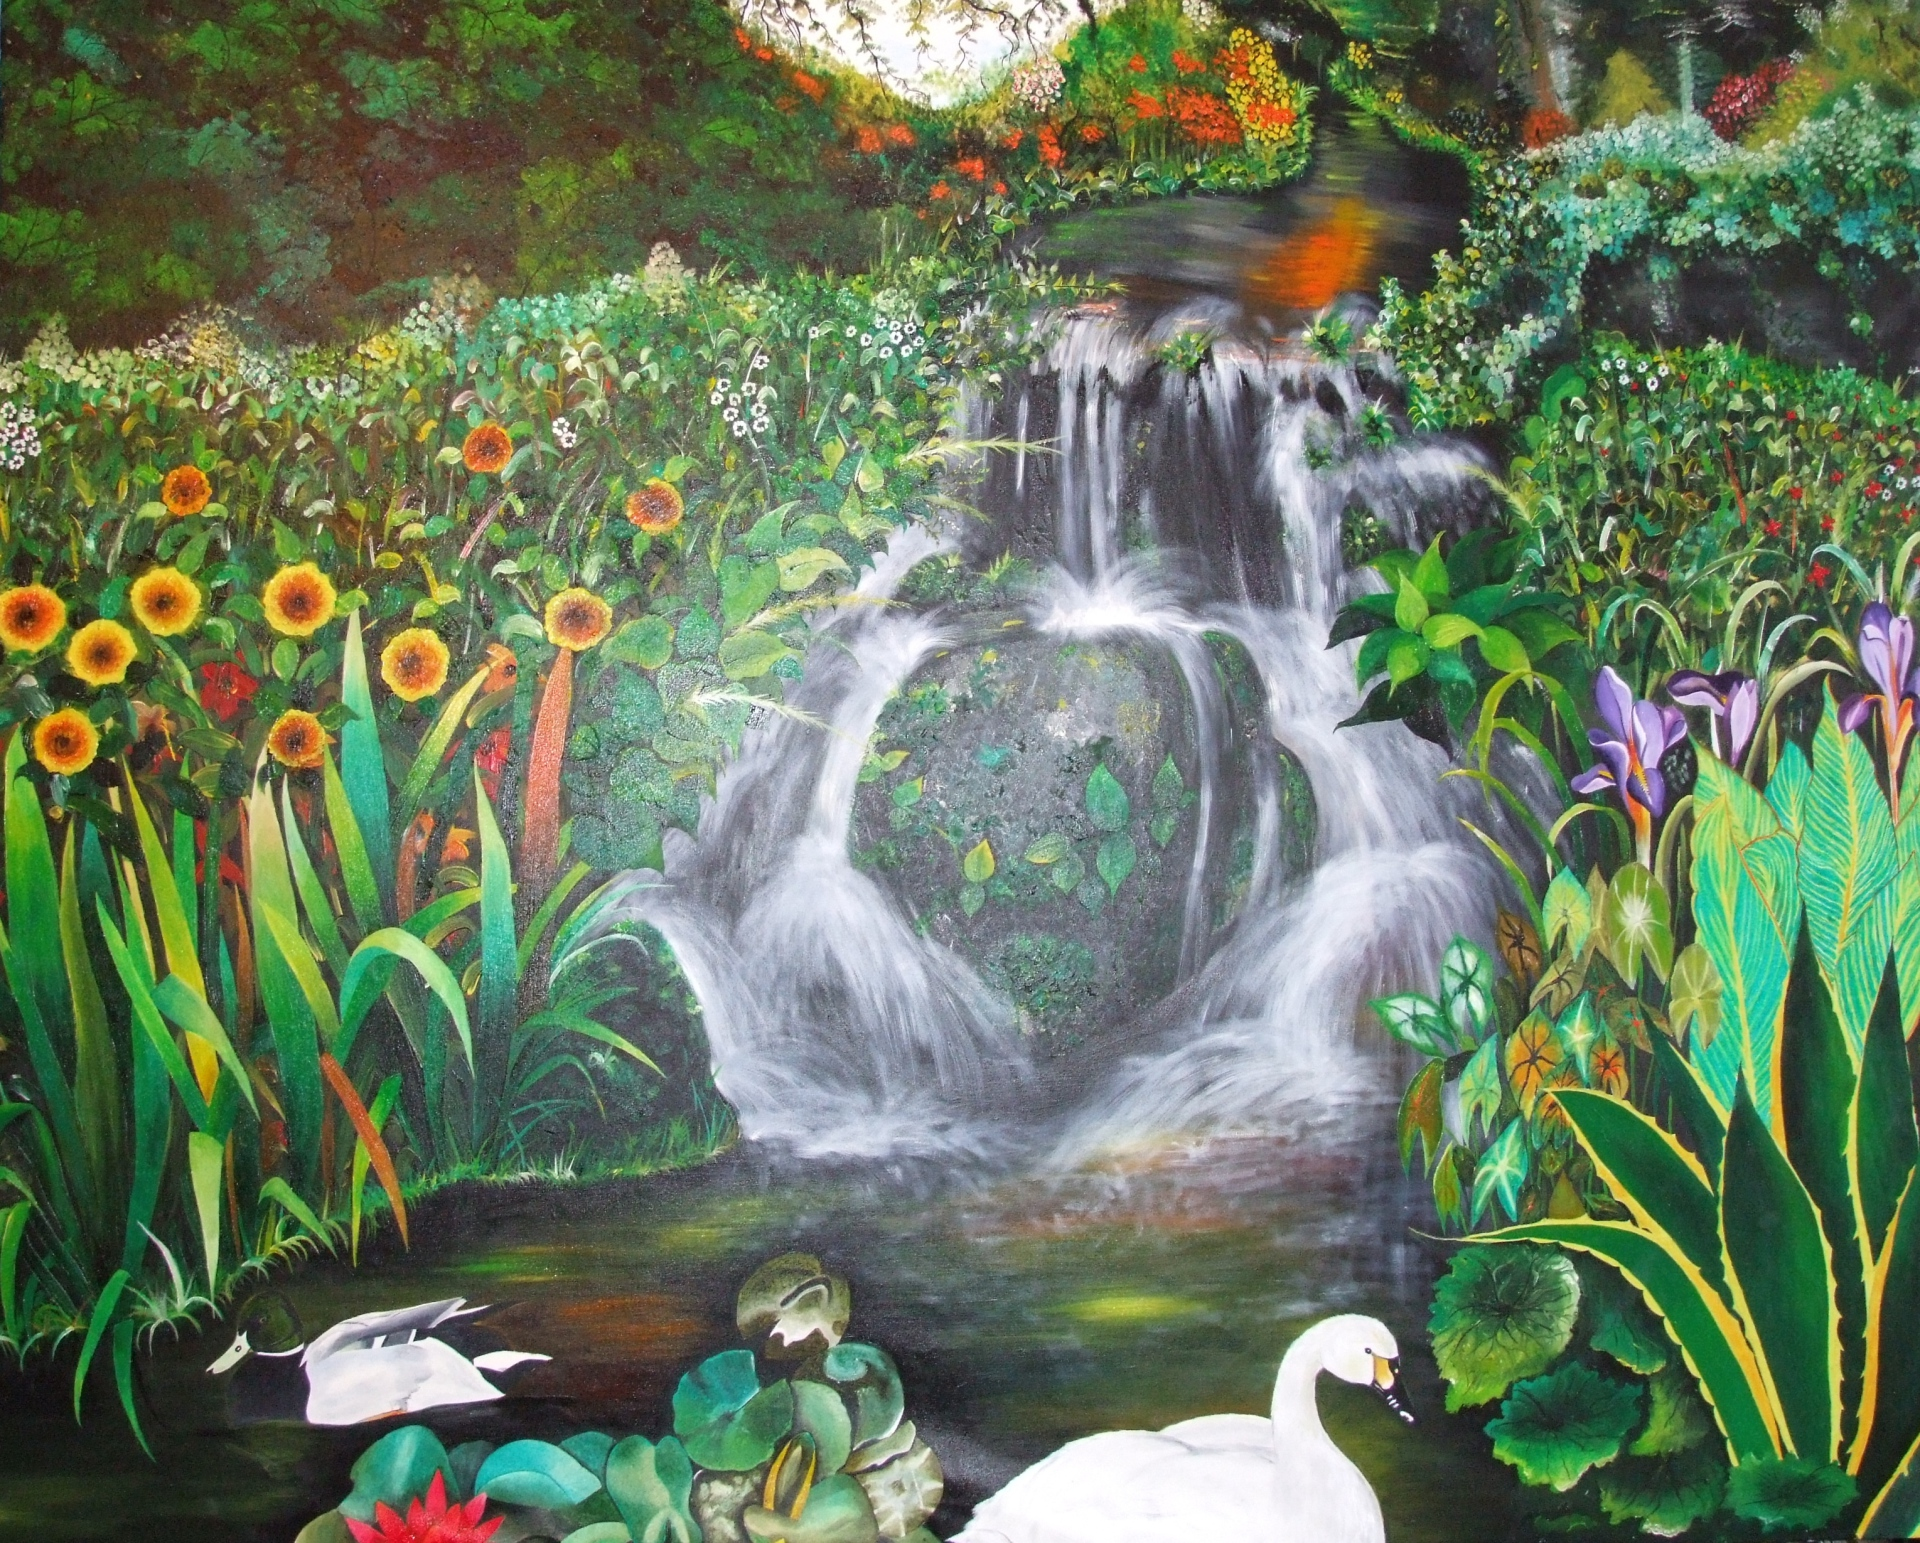 Nature  170 x 140 cm - oil on canvas